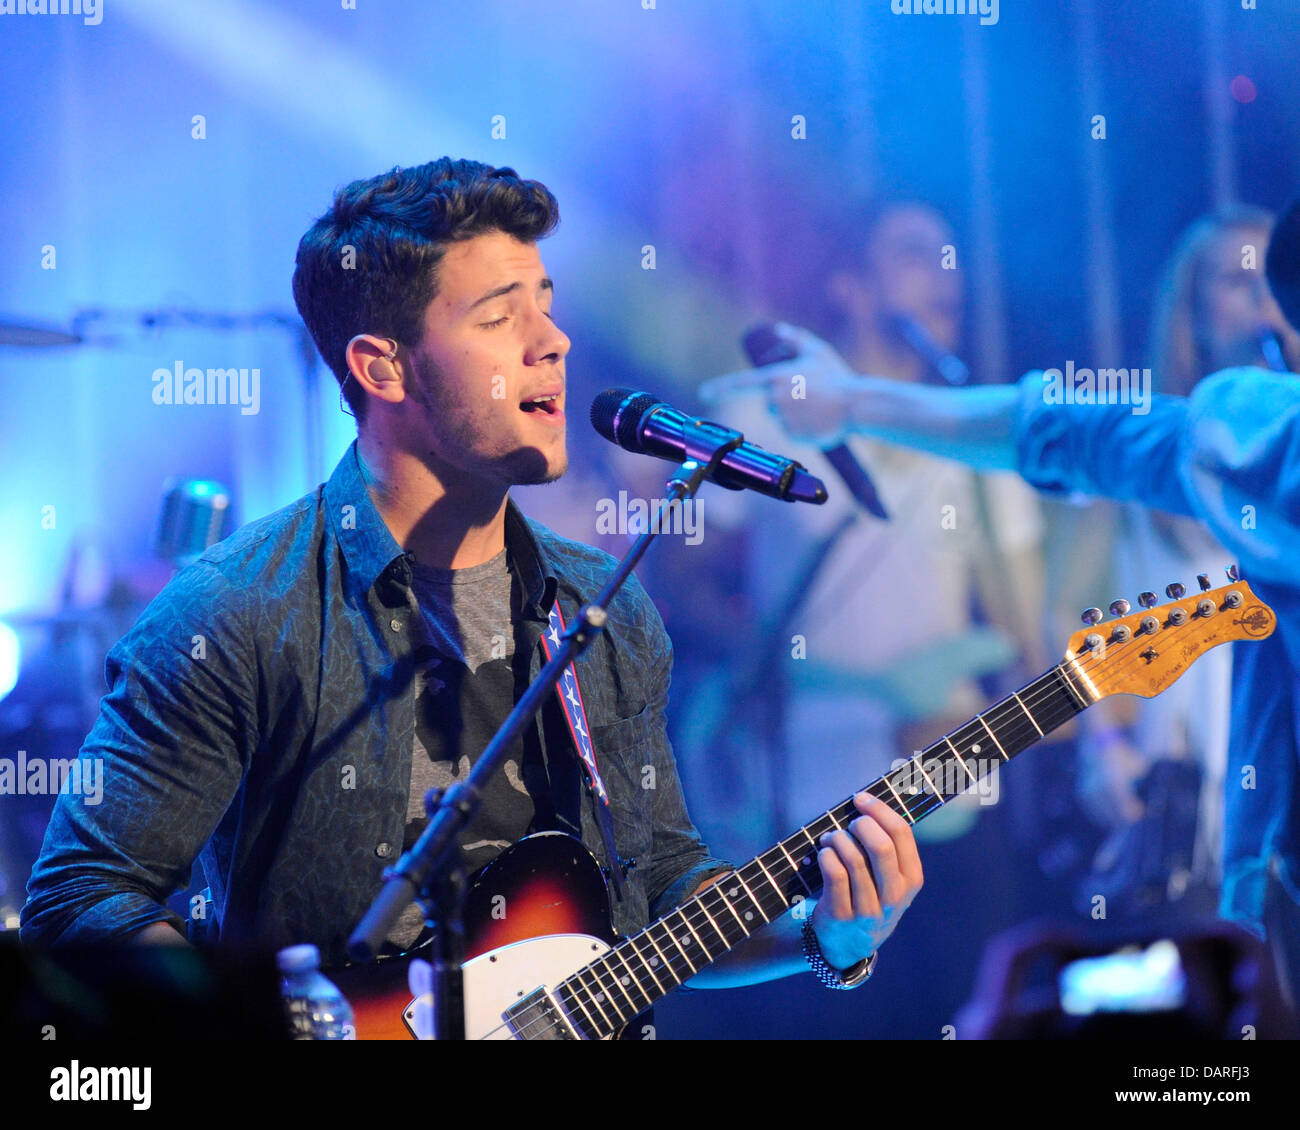 Toronto, Canada. July 17, 2013. American pop rock band JONAS BROTHERS television appearance on Much Music's - Stock Image